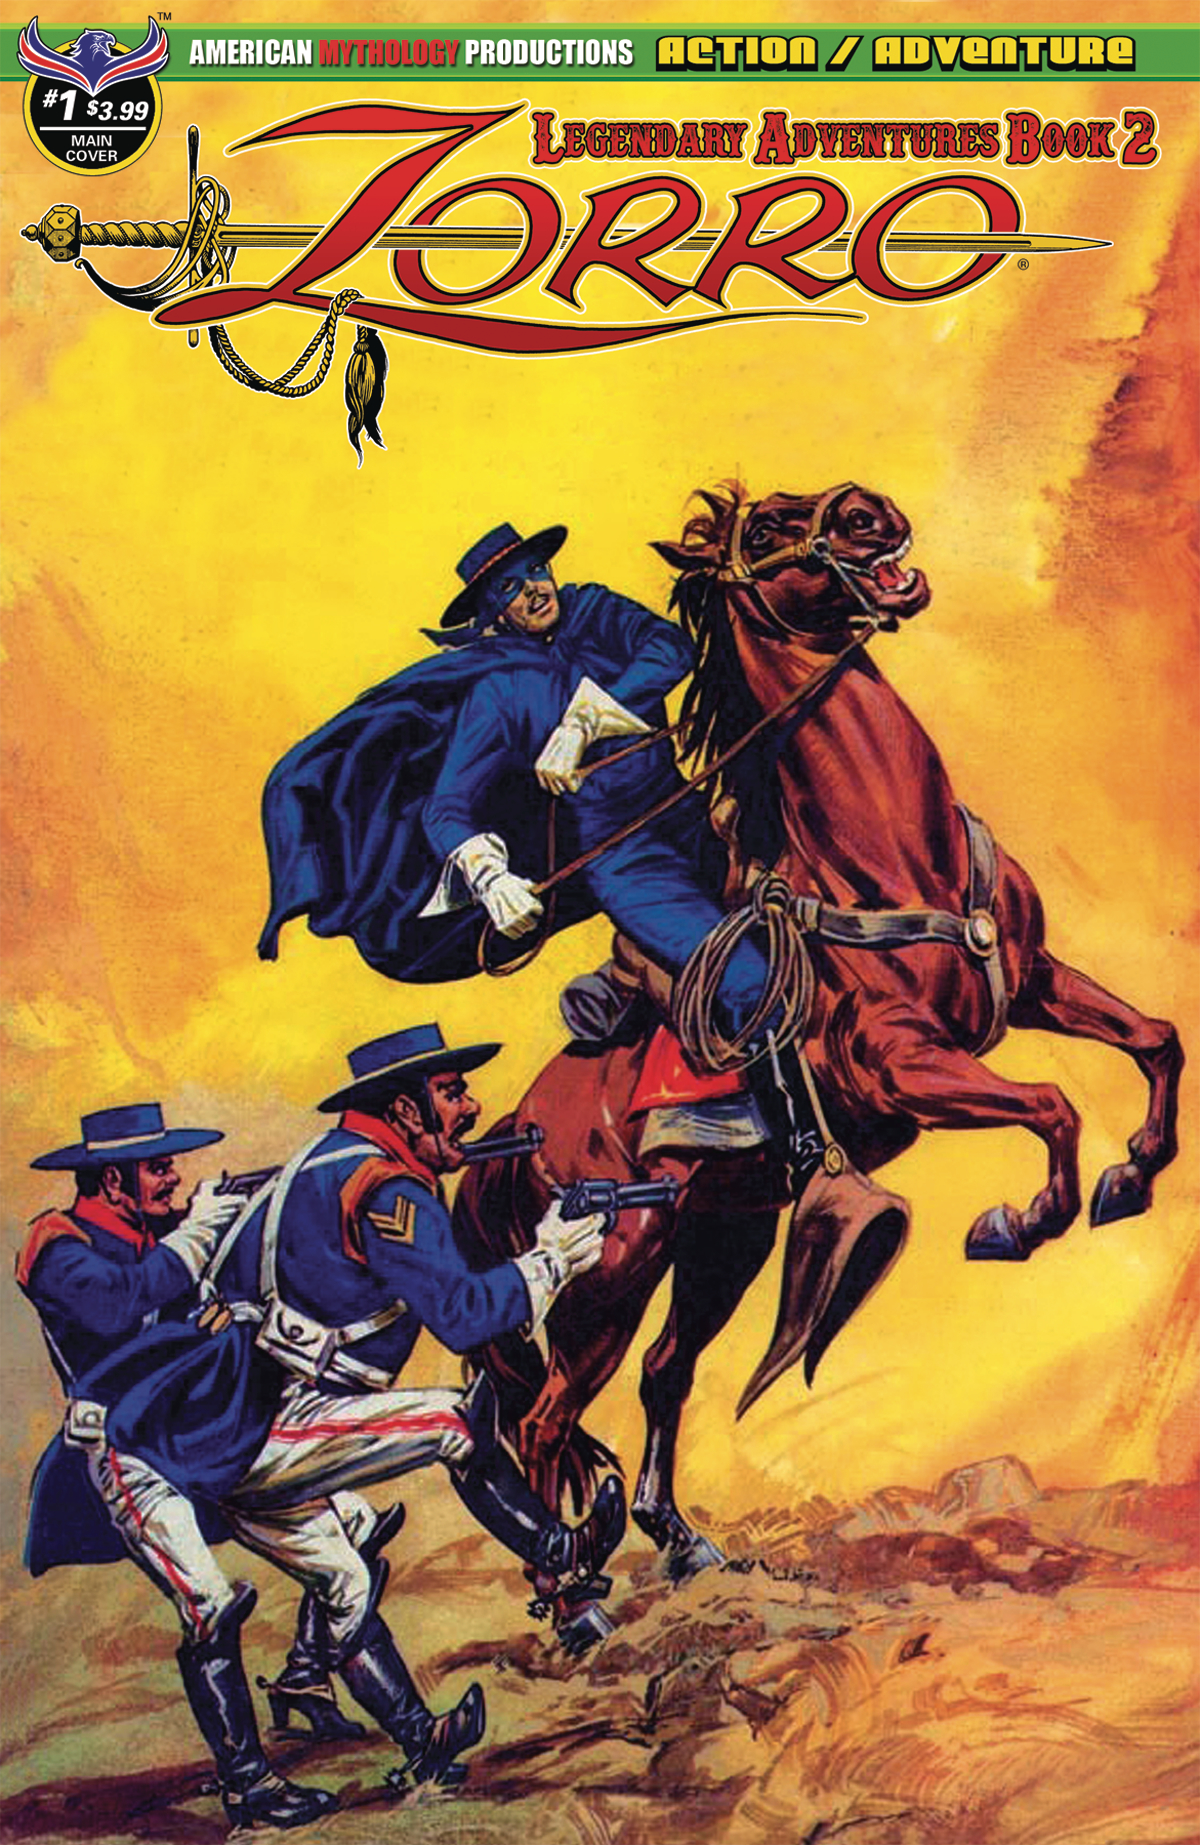 ZORRO LEGENDARY ADVENTURES BOOK 2 #1 MAIN CVR